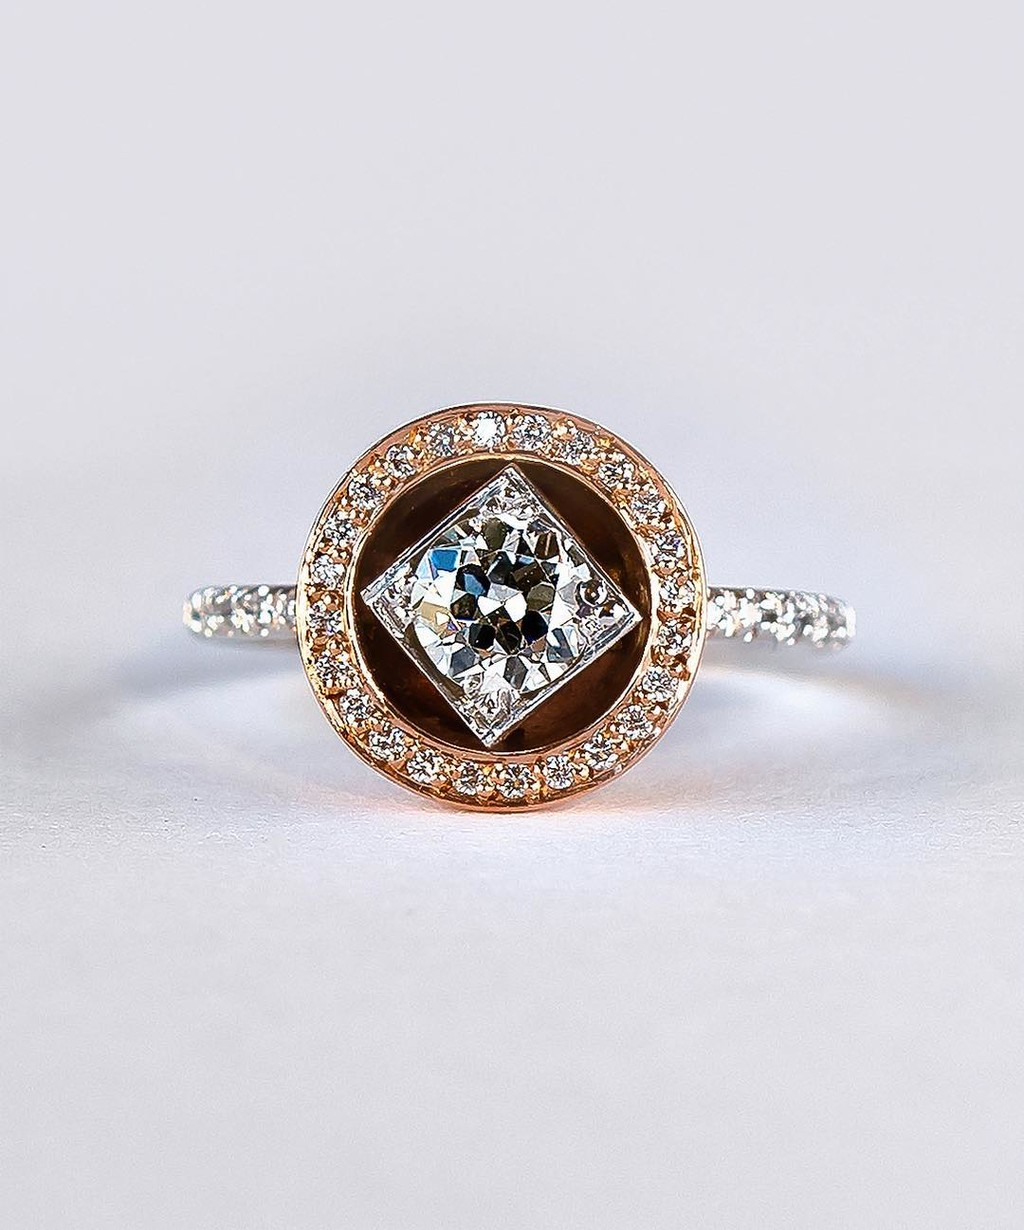 ✨💫 Nothing like a little transfiguration to breath new life into this stunning antique post-consumer diamond! This low profile